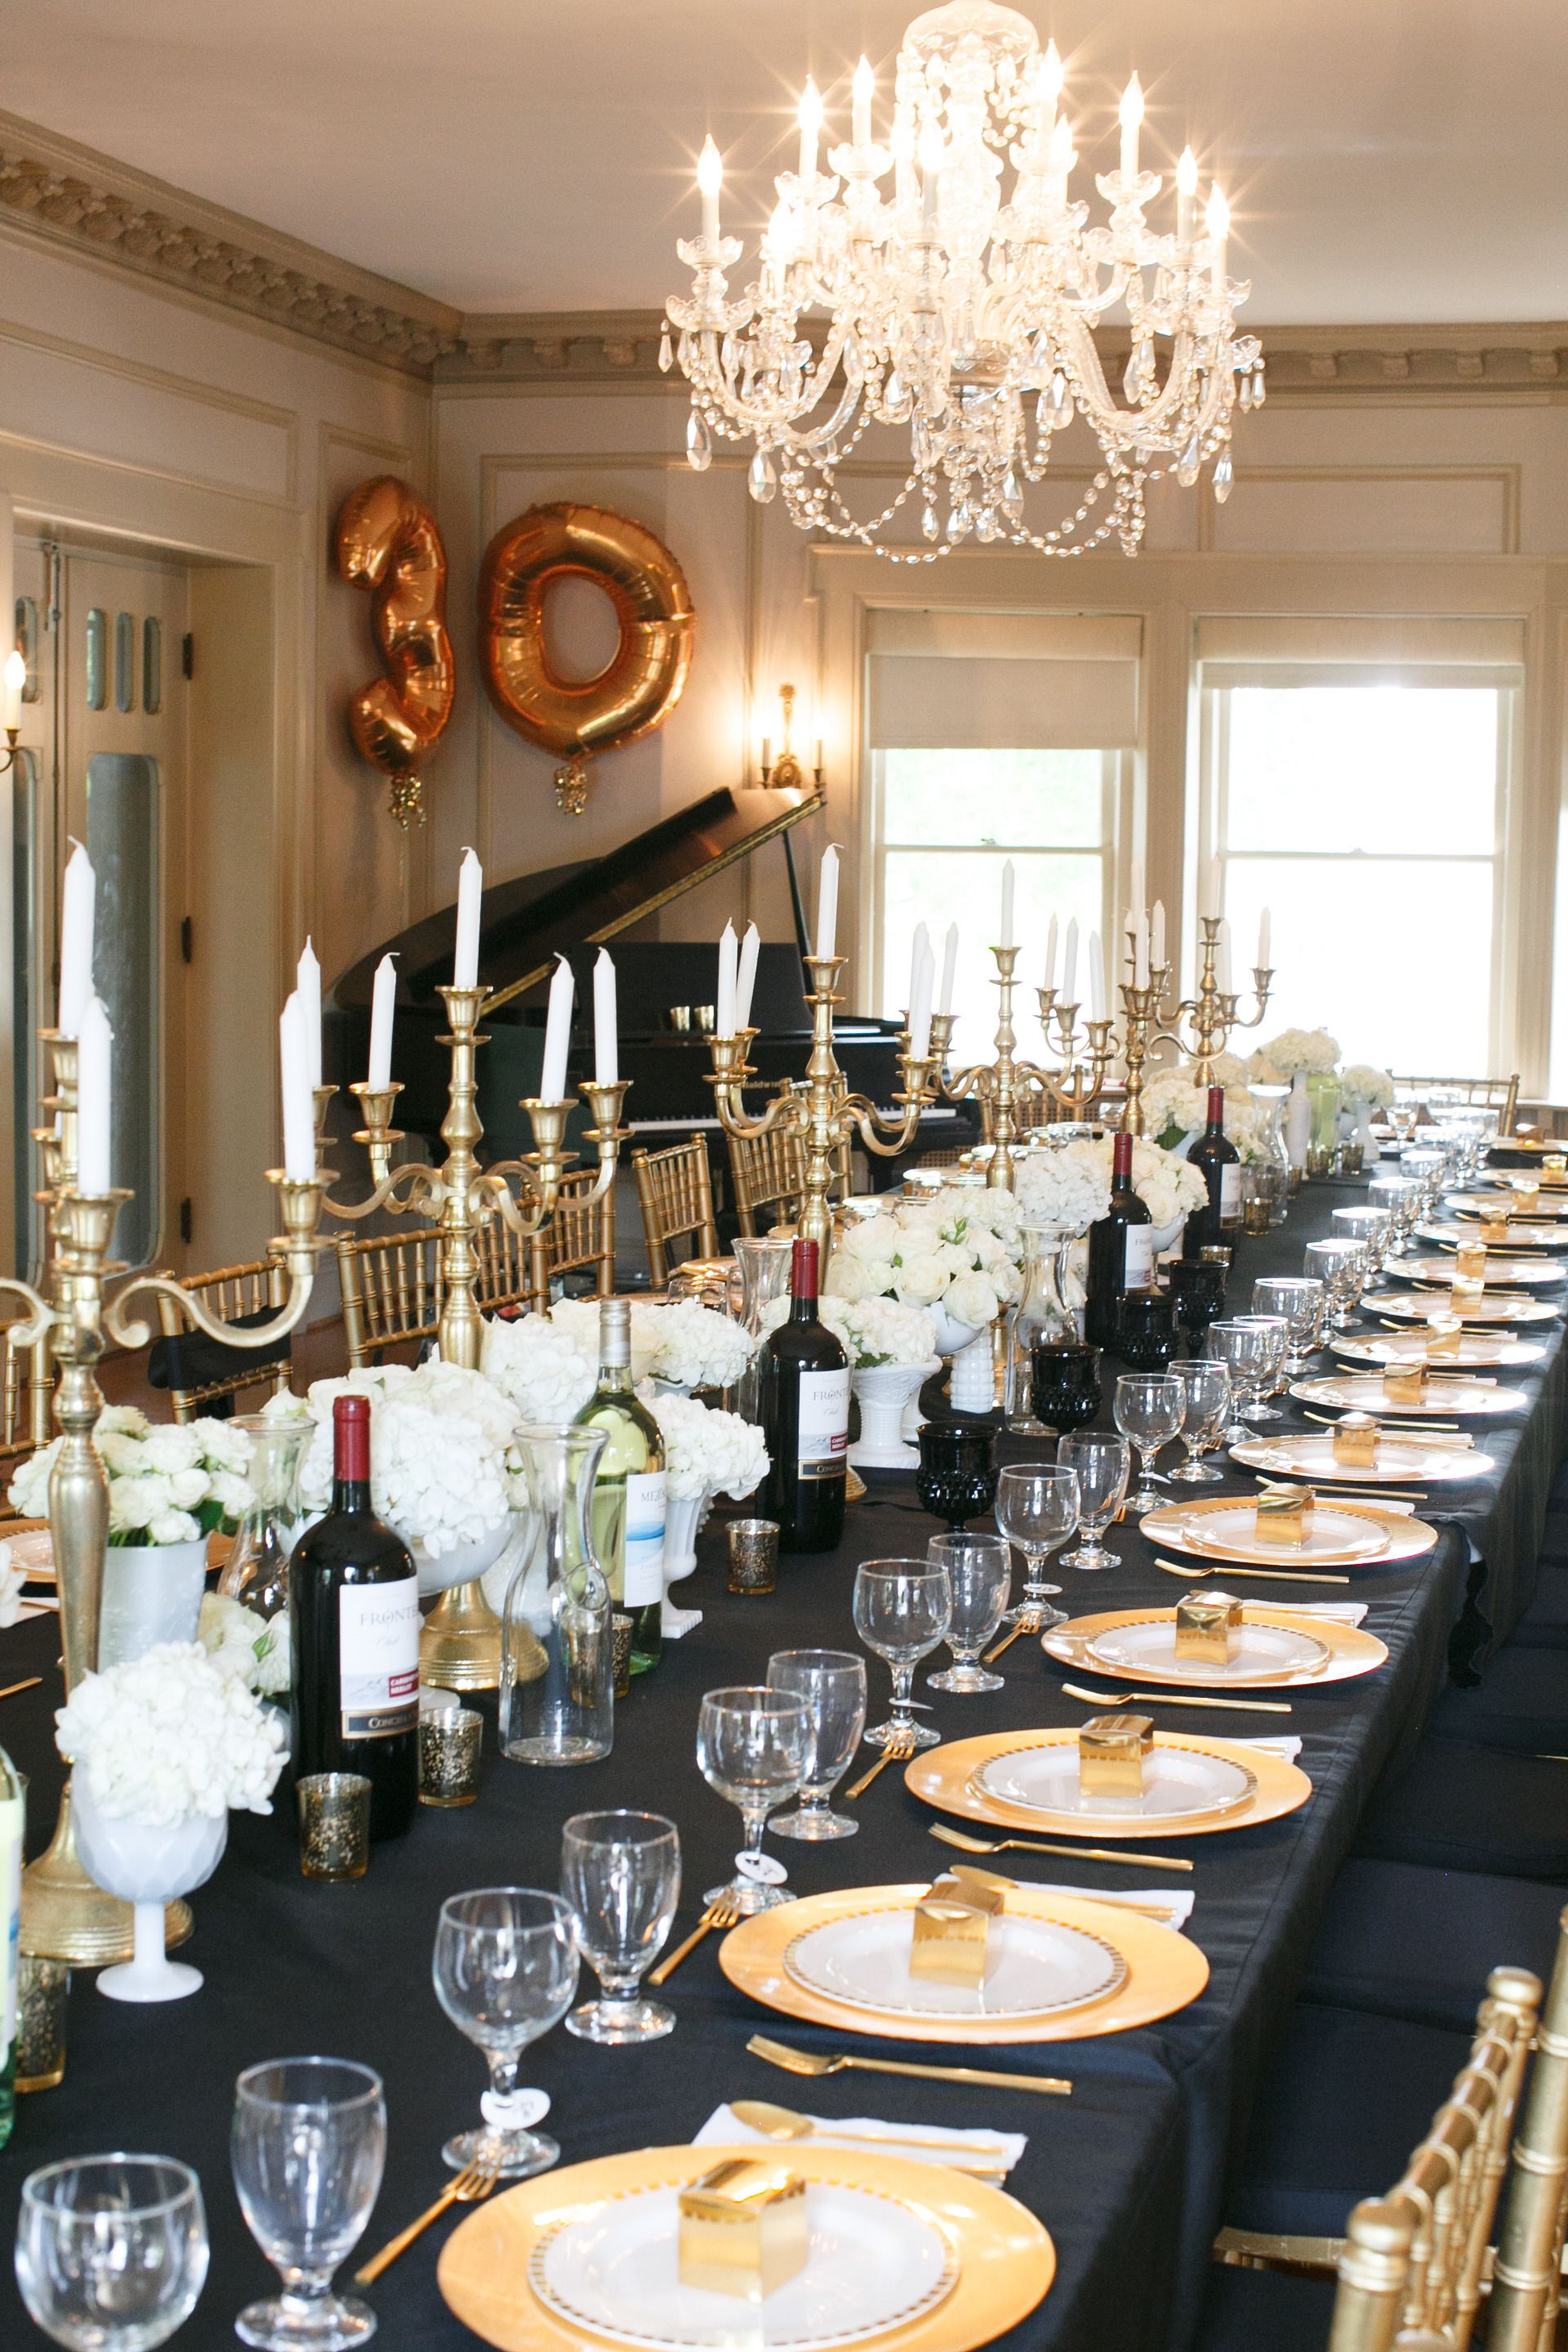 Amazing Dinner Birthday Party Ideas Part - 13: Black U0026 Gold U0026 White All Over -- A Classy Grown Up Birthday Party.